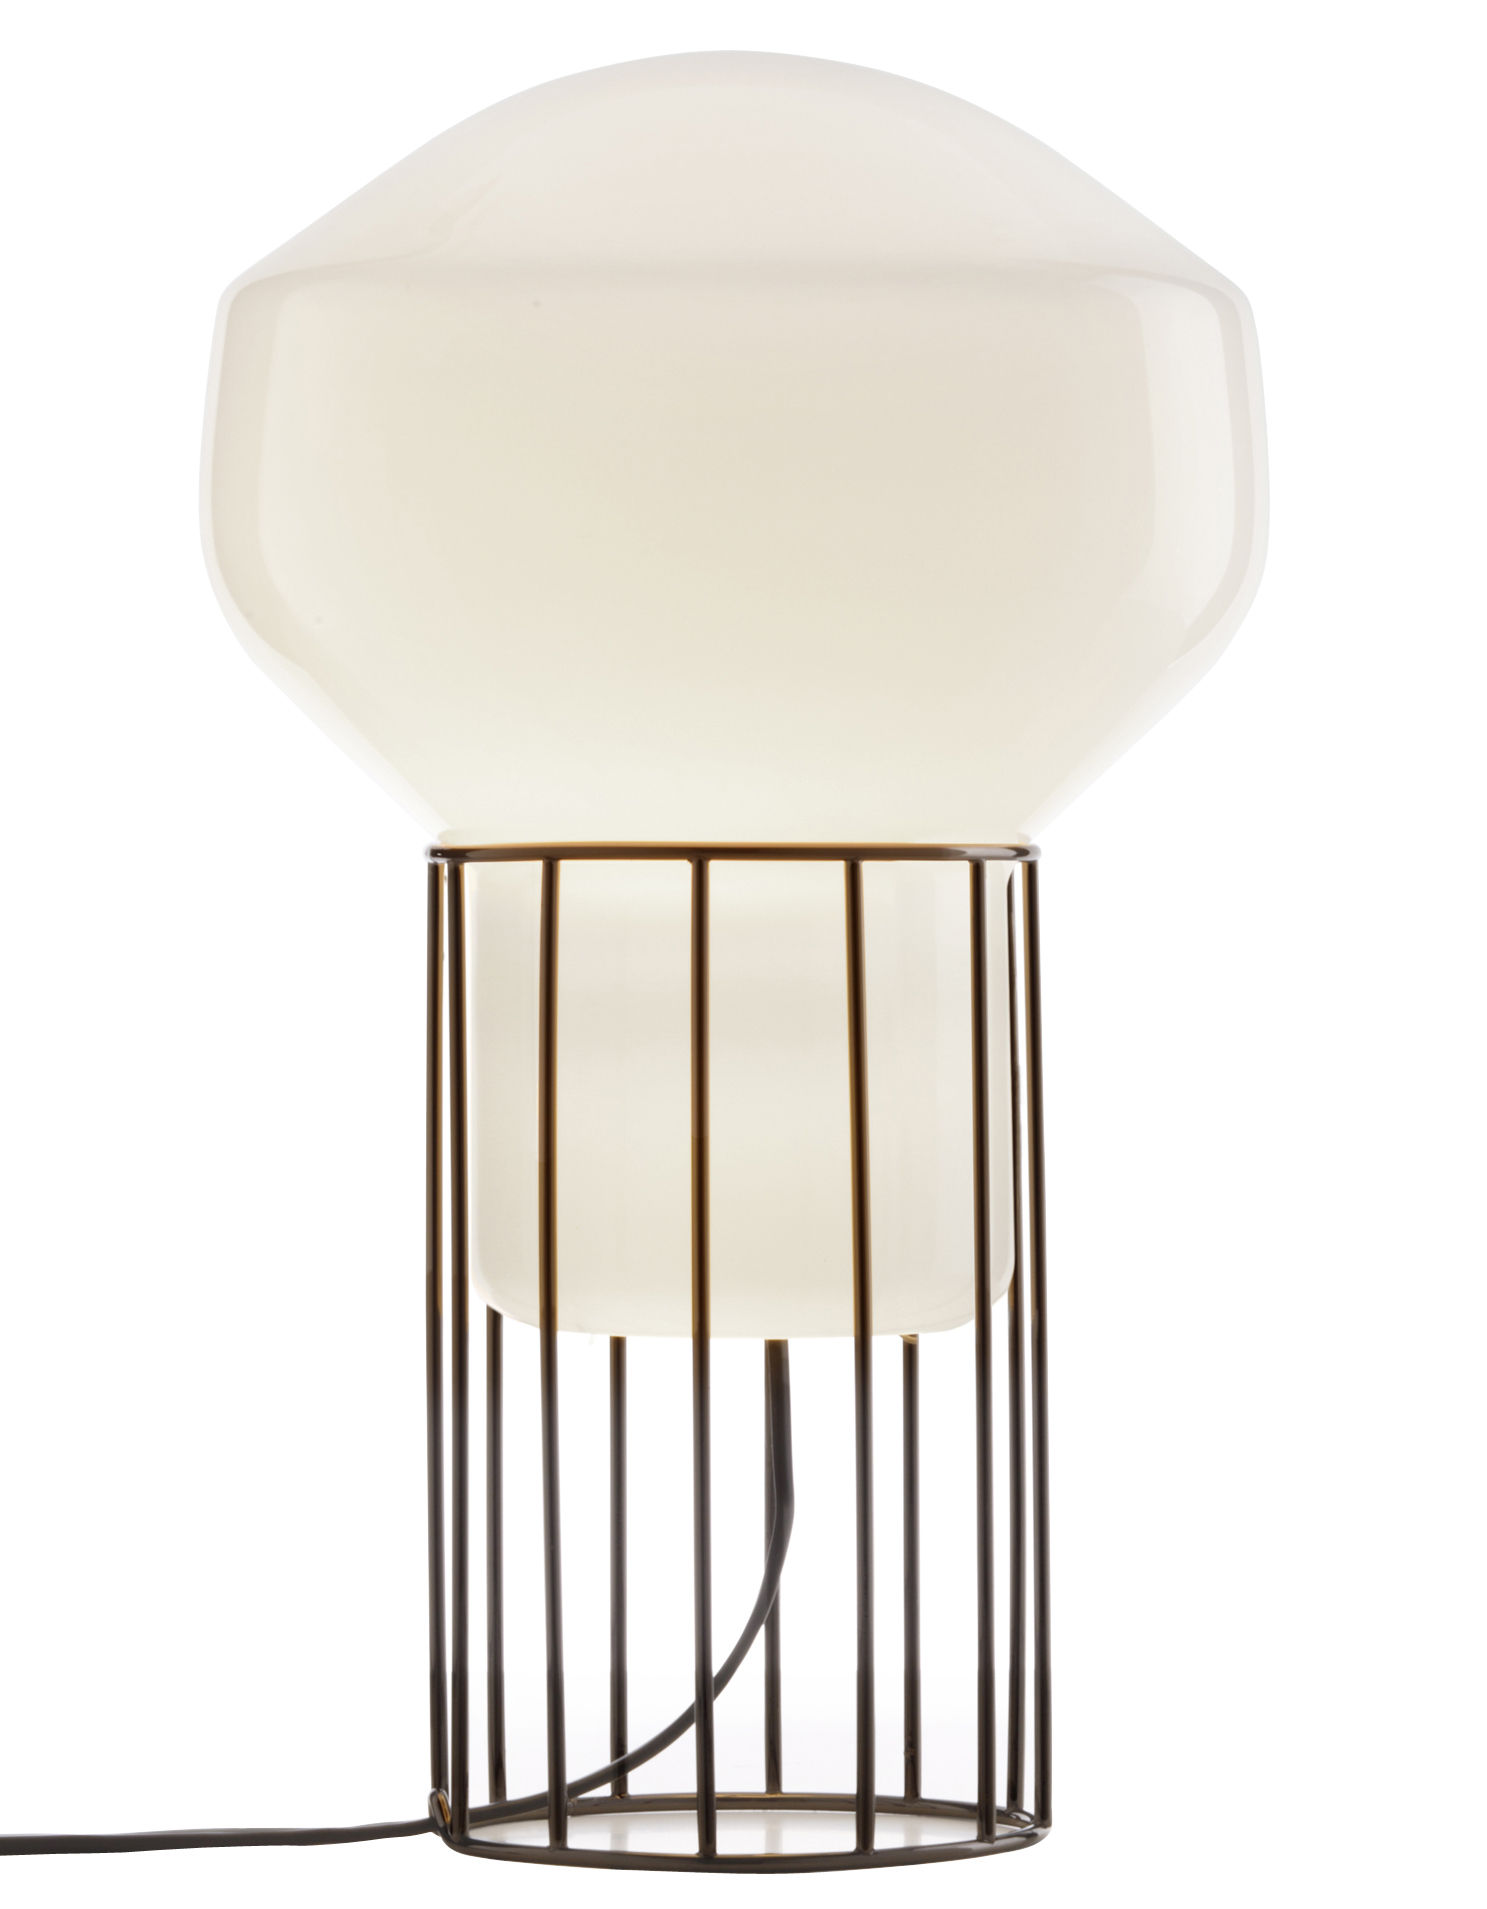 Lighting - Table Lamps - Aérostat Piccola Table lamp by Fabbian - Black structure / White diffuser - Nickel-plate metal, Opalin mouth blown glass